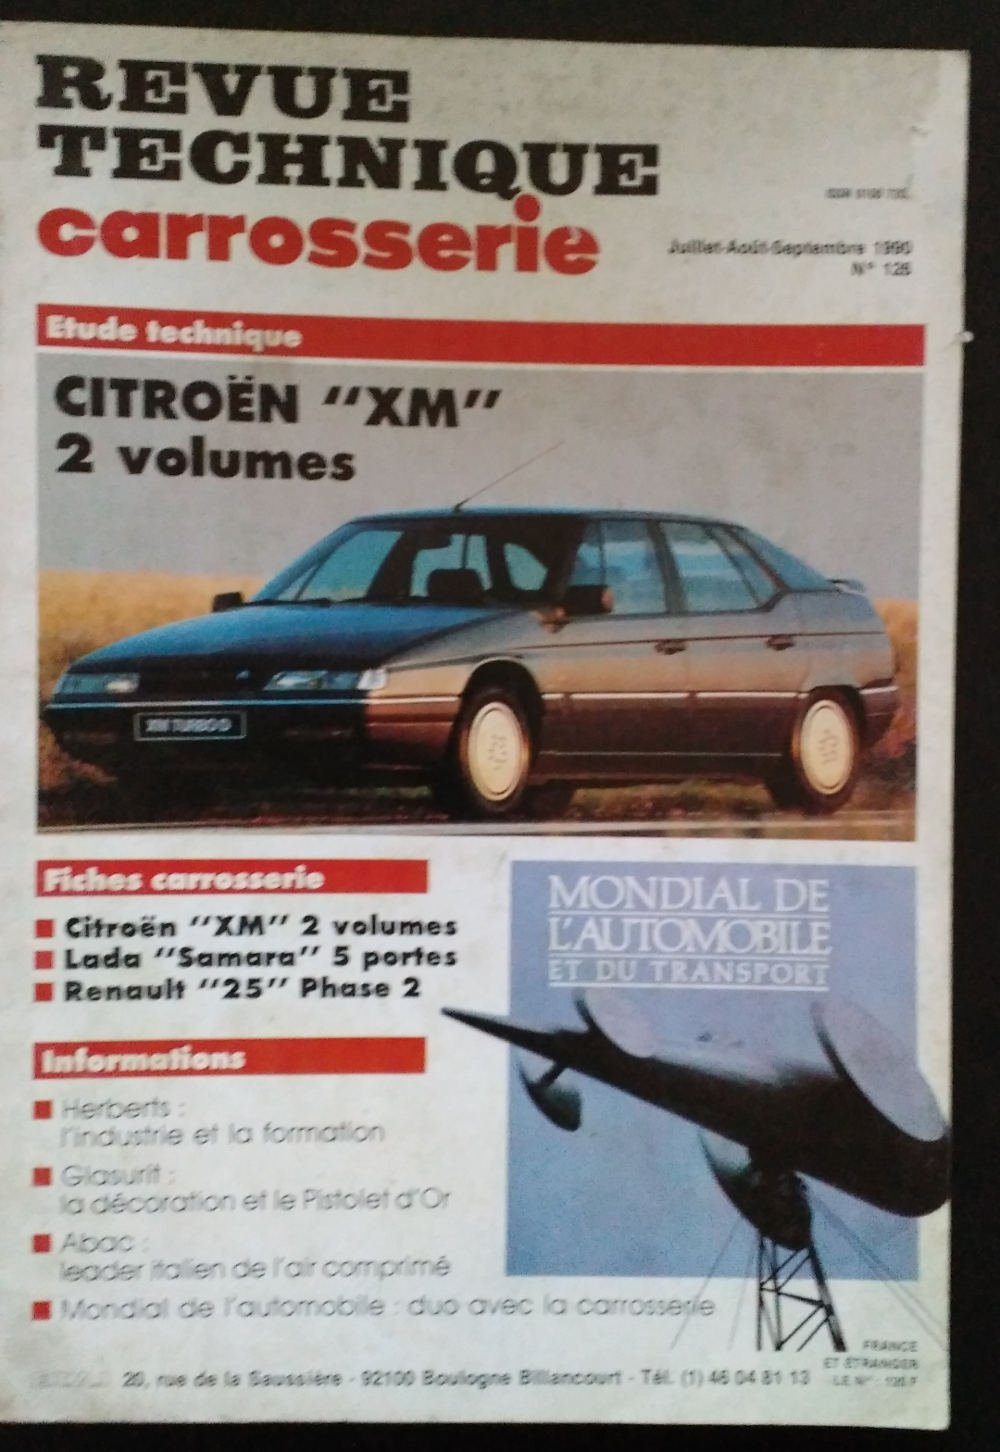 Revue Technique Carrosserie Citroën XM